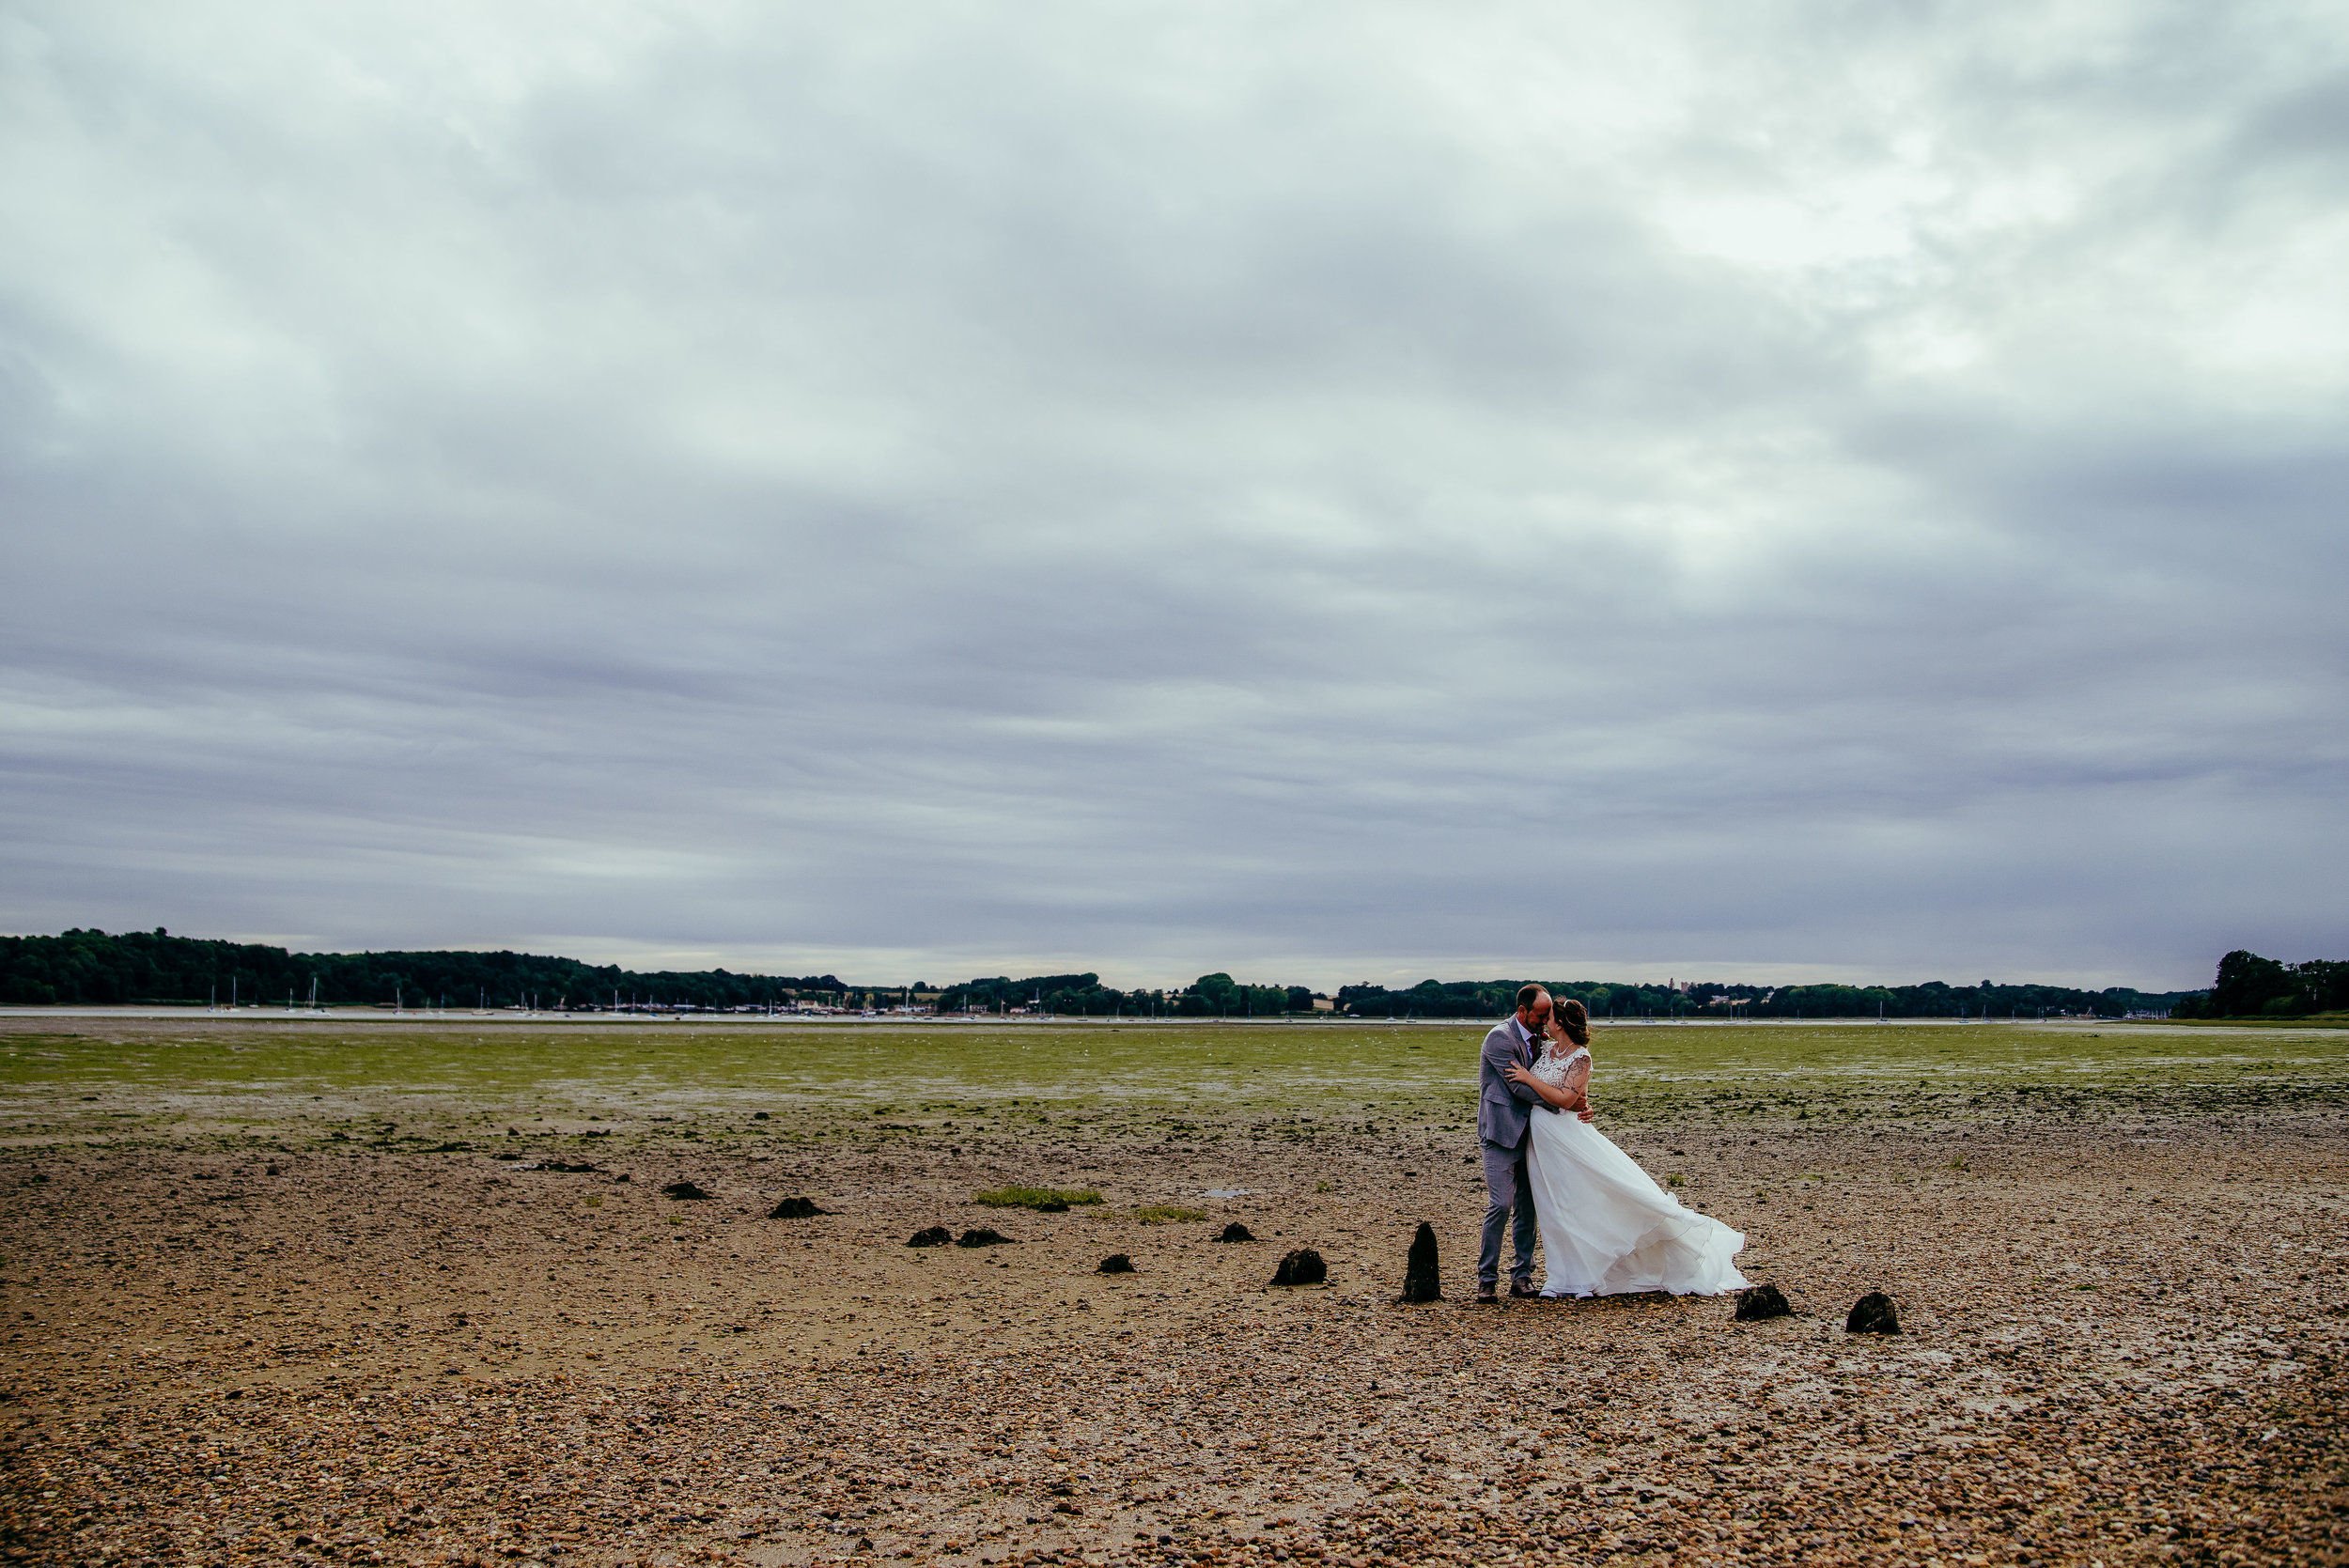 Suffolk-Wedding-Photography-Ipswich-Essex-Norfolk-photographer-1-2.jpg